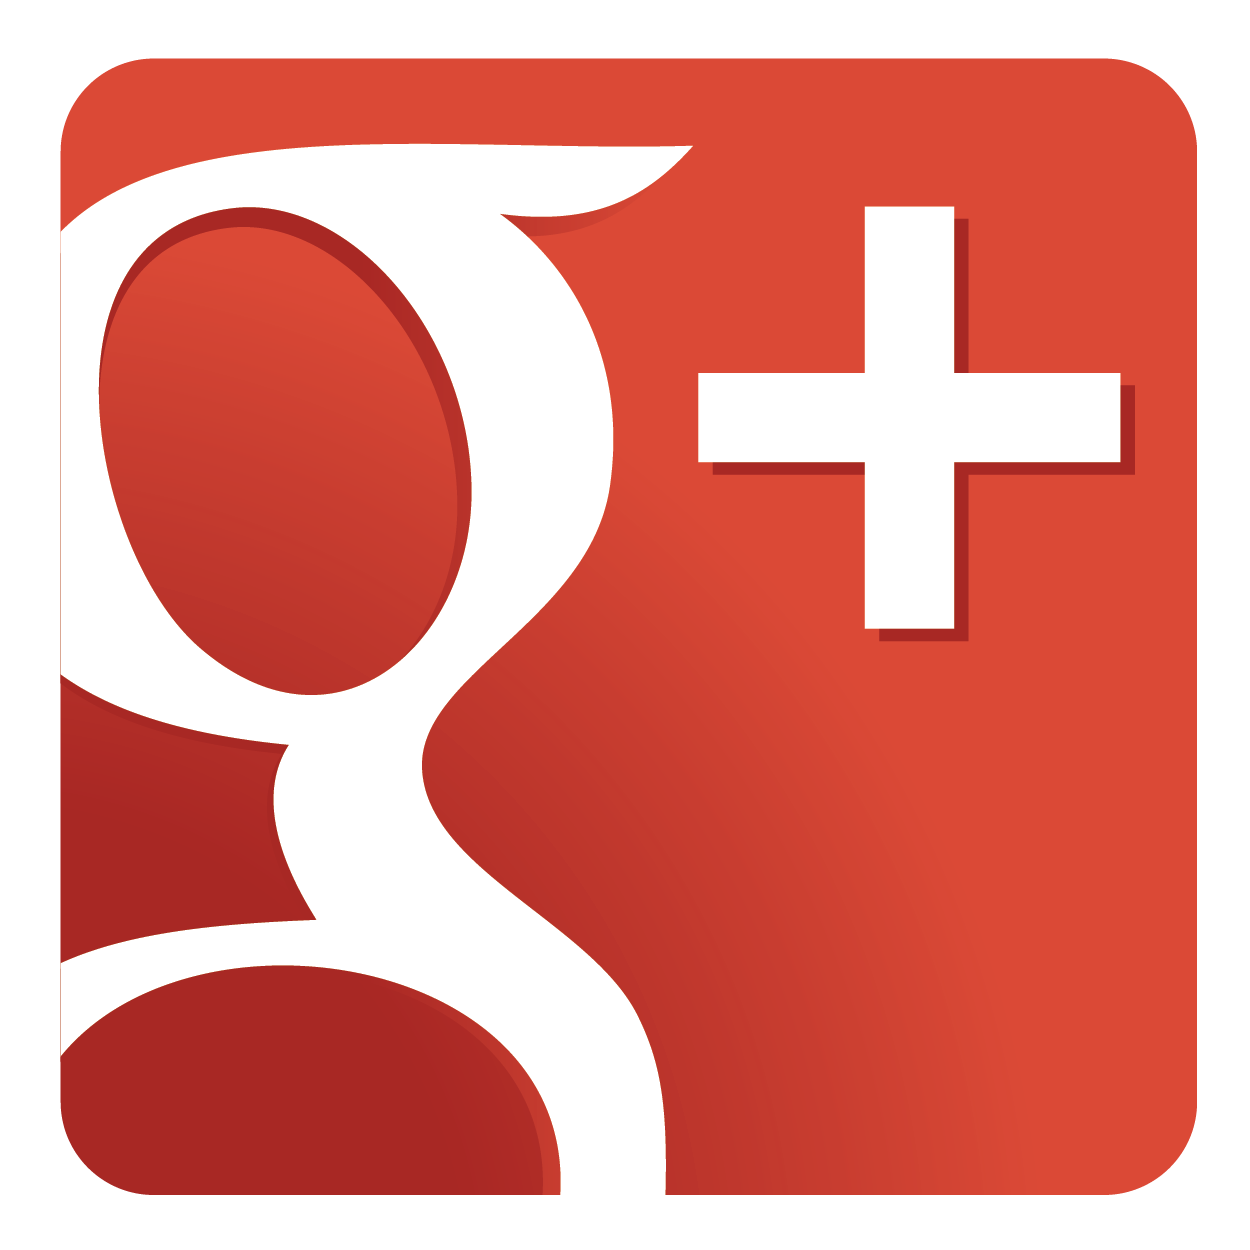 Google+ Small Business Marketing, Is It For You?